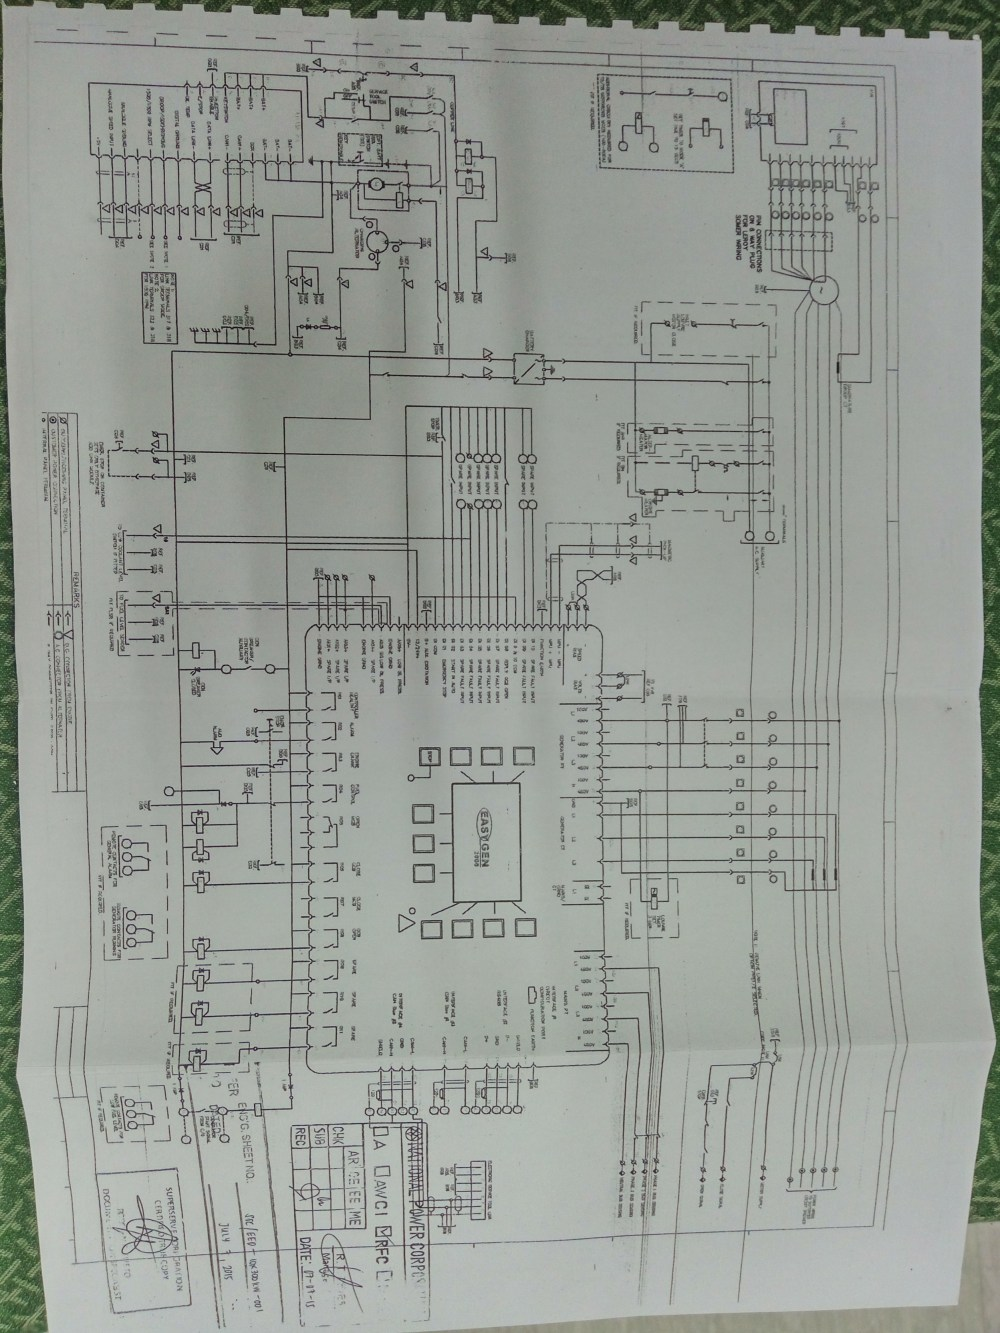 medium resolution of where can i tap in a diesel generator emoncms community kb monitor panel wiring diagram fg wilson control panel wiring diagram